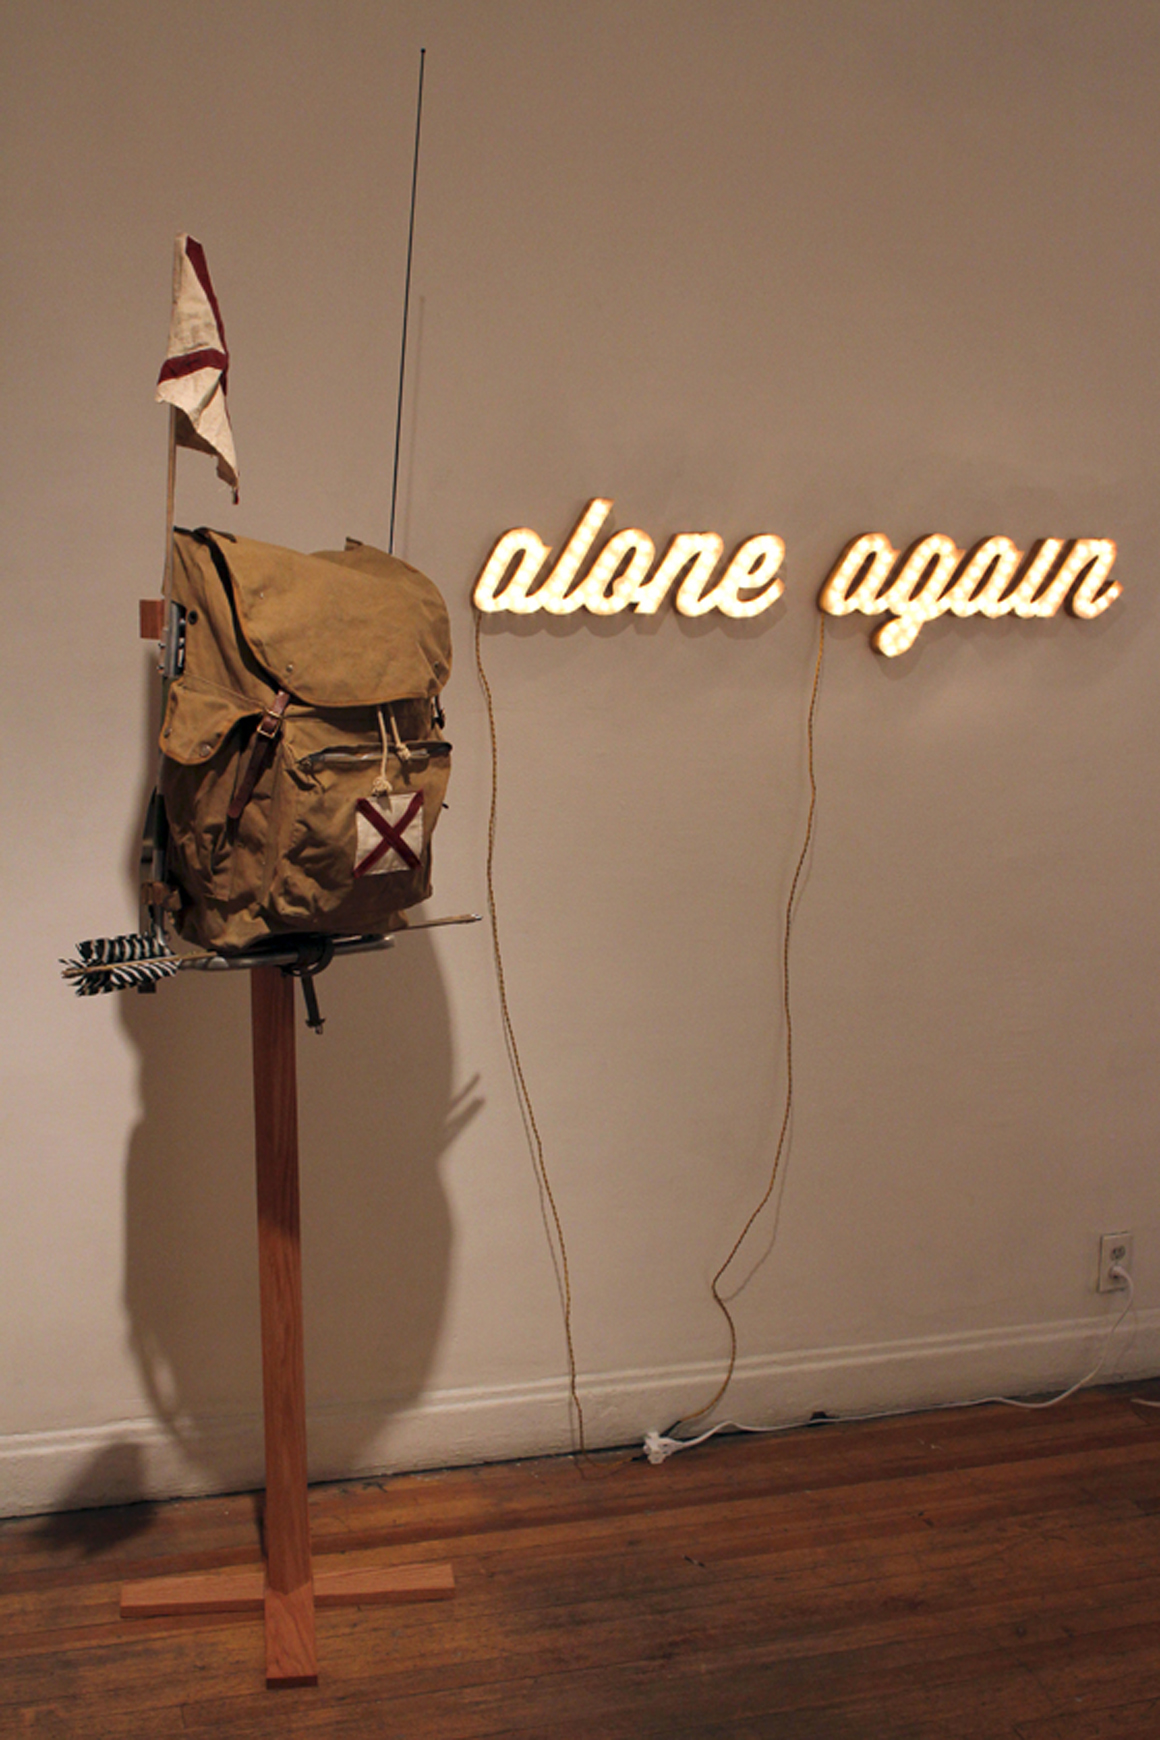 <p><em>Alone Again (Pack)</em><span class='media'>vintage scout pack, handmade bamboo arrows, radio, canvas patches and flag, oak stand</span>78 x 31 1/2 x 16in<br>2013<br><a class='inquire' href='mailto:info@gildargallery.com?subject=Artwork Inquiry REVE0006&body=I am interested in finding out more about Alone Again (Pack) by Ryan Everson'>Inquire</a></p>